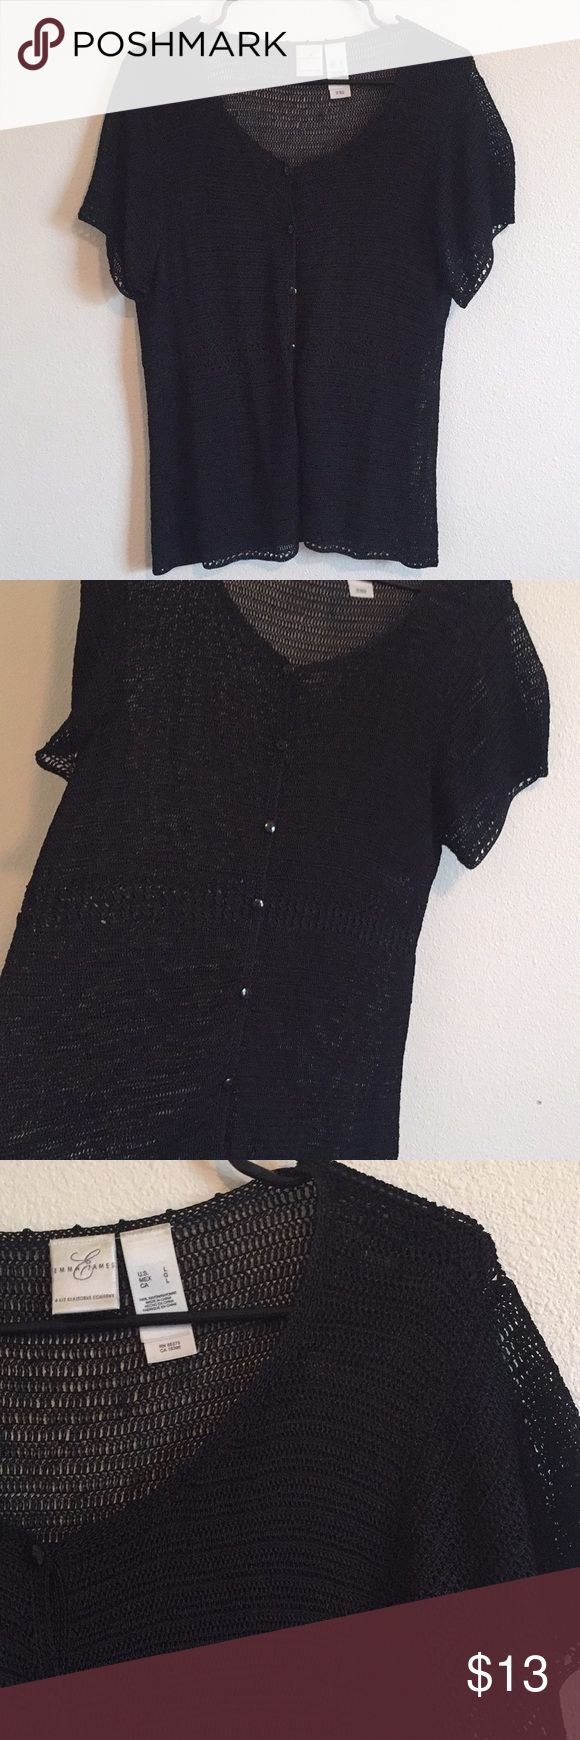 Emma James Crochet Knit Short-sleeve Sweater Like new condition. Buttons up front. Go's with almost anything! Perfect for the spring and summer weather. Emma James Tops